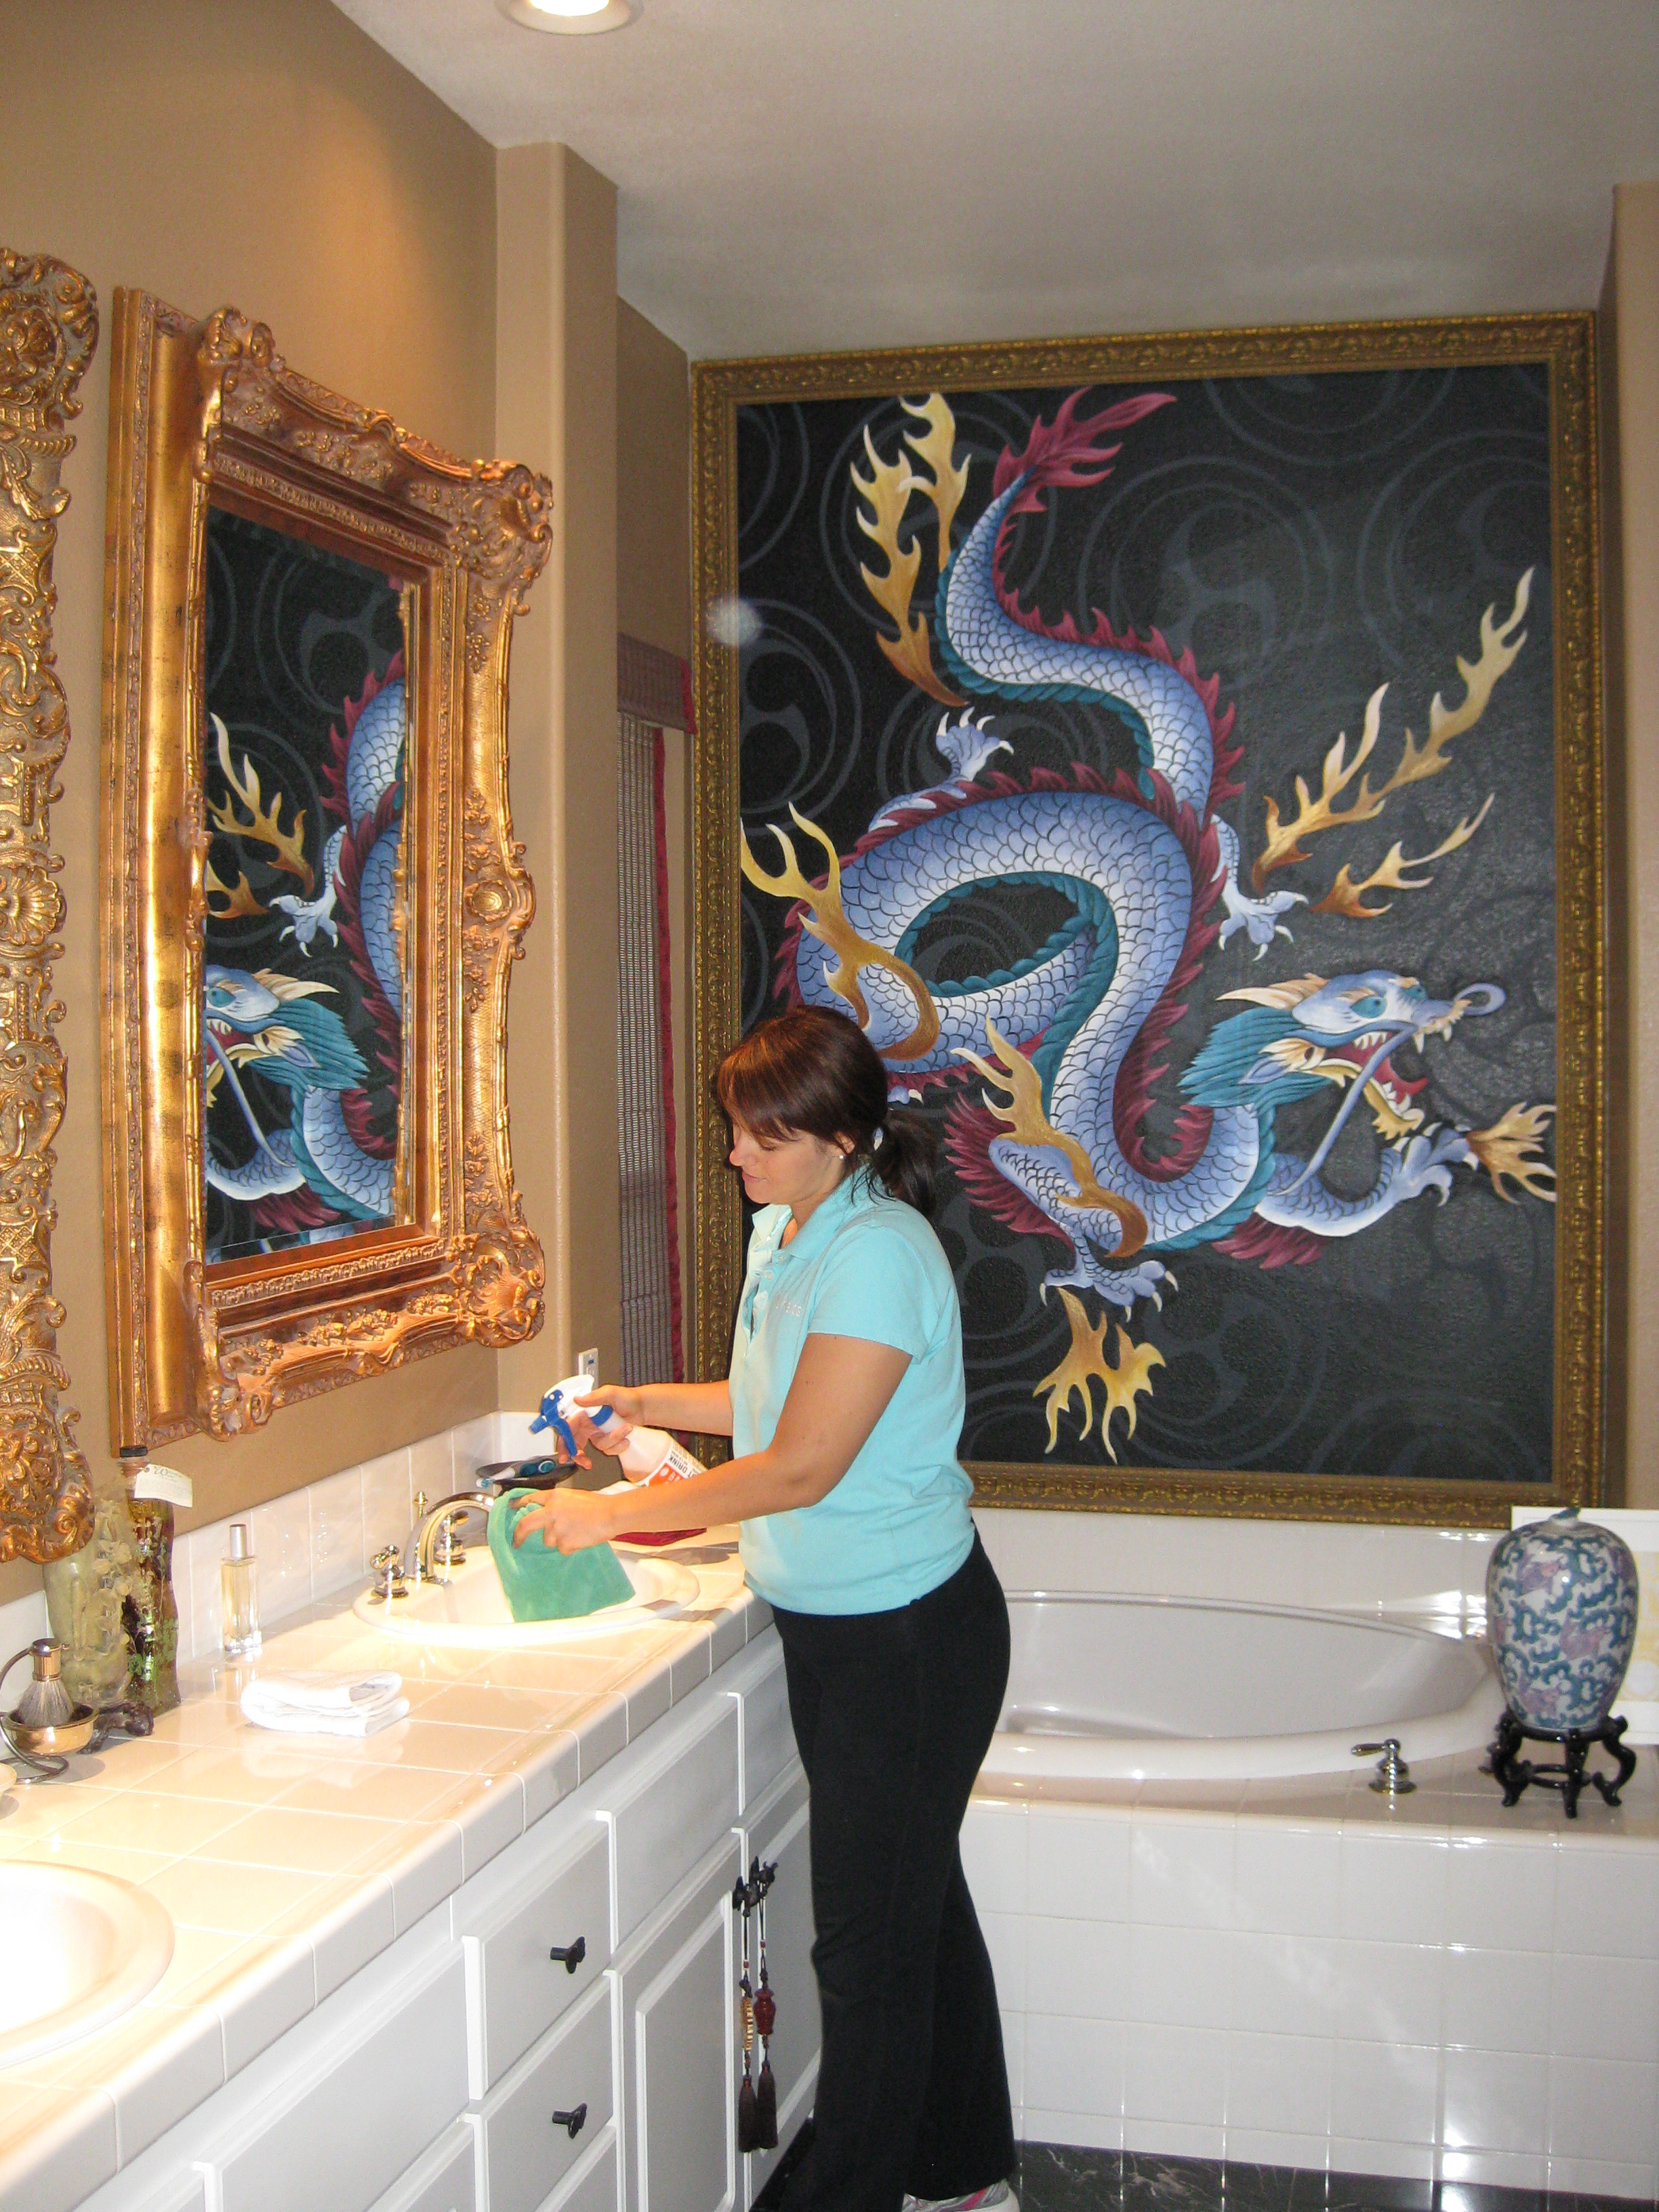 My Maids House Cleaning Service image 2